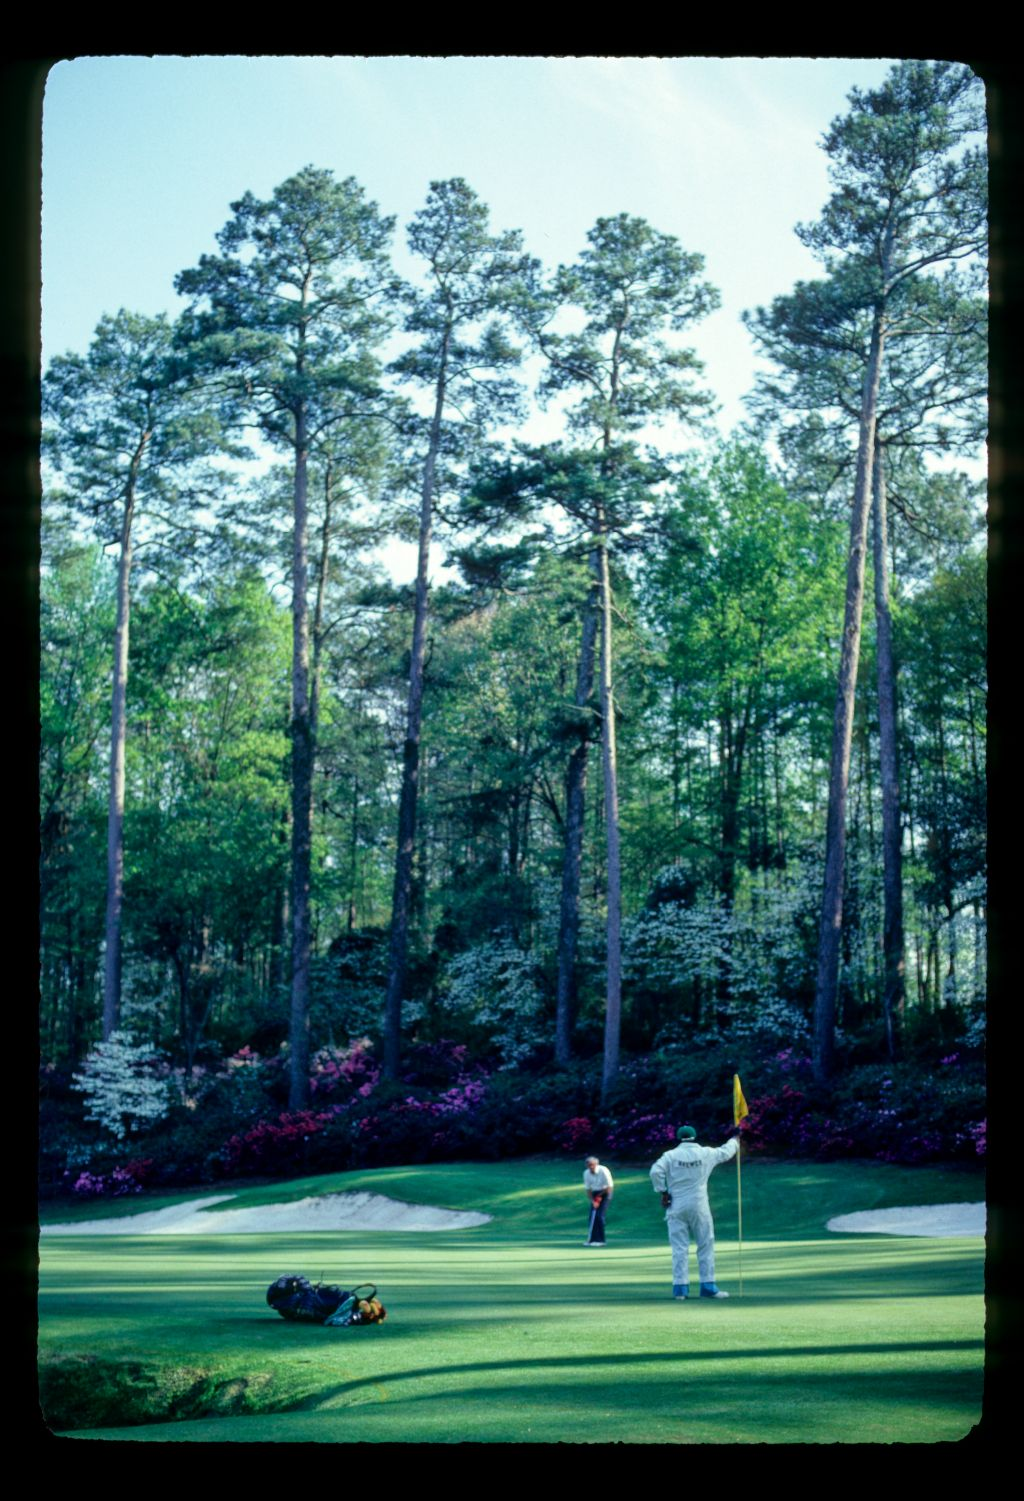 Gay Brewer putting on the 13th during the 1981 Masters